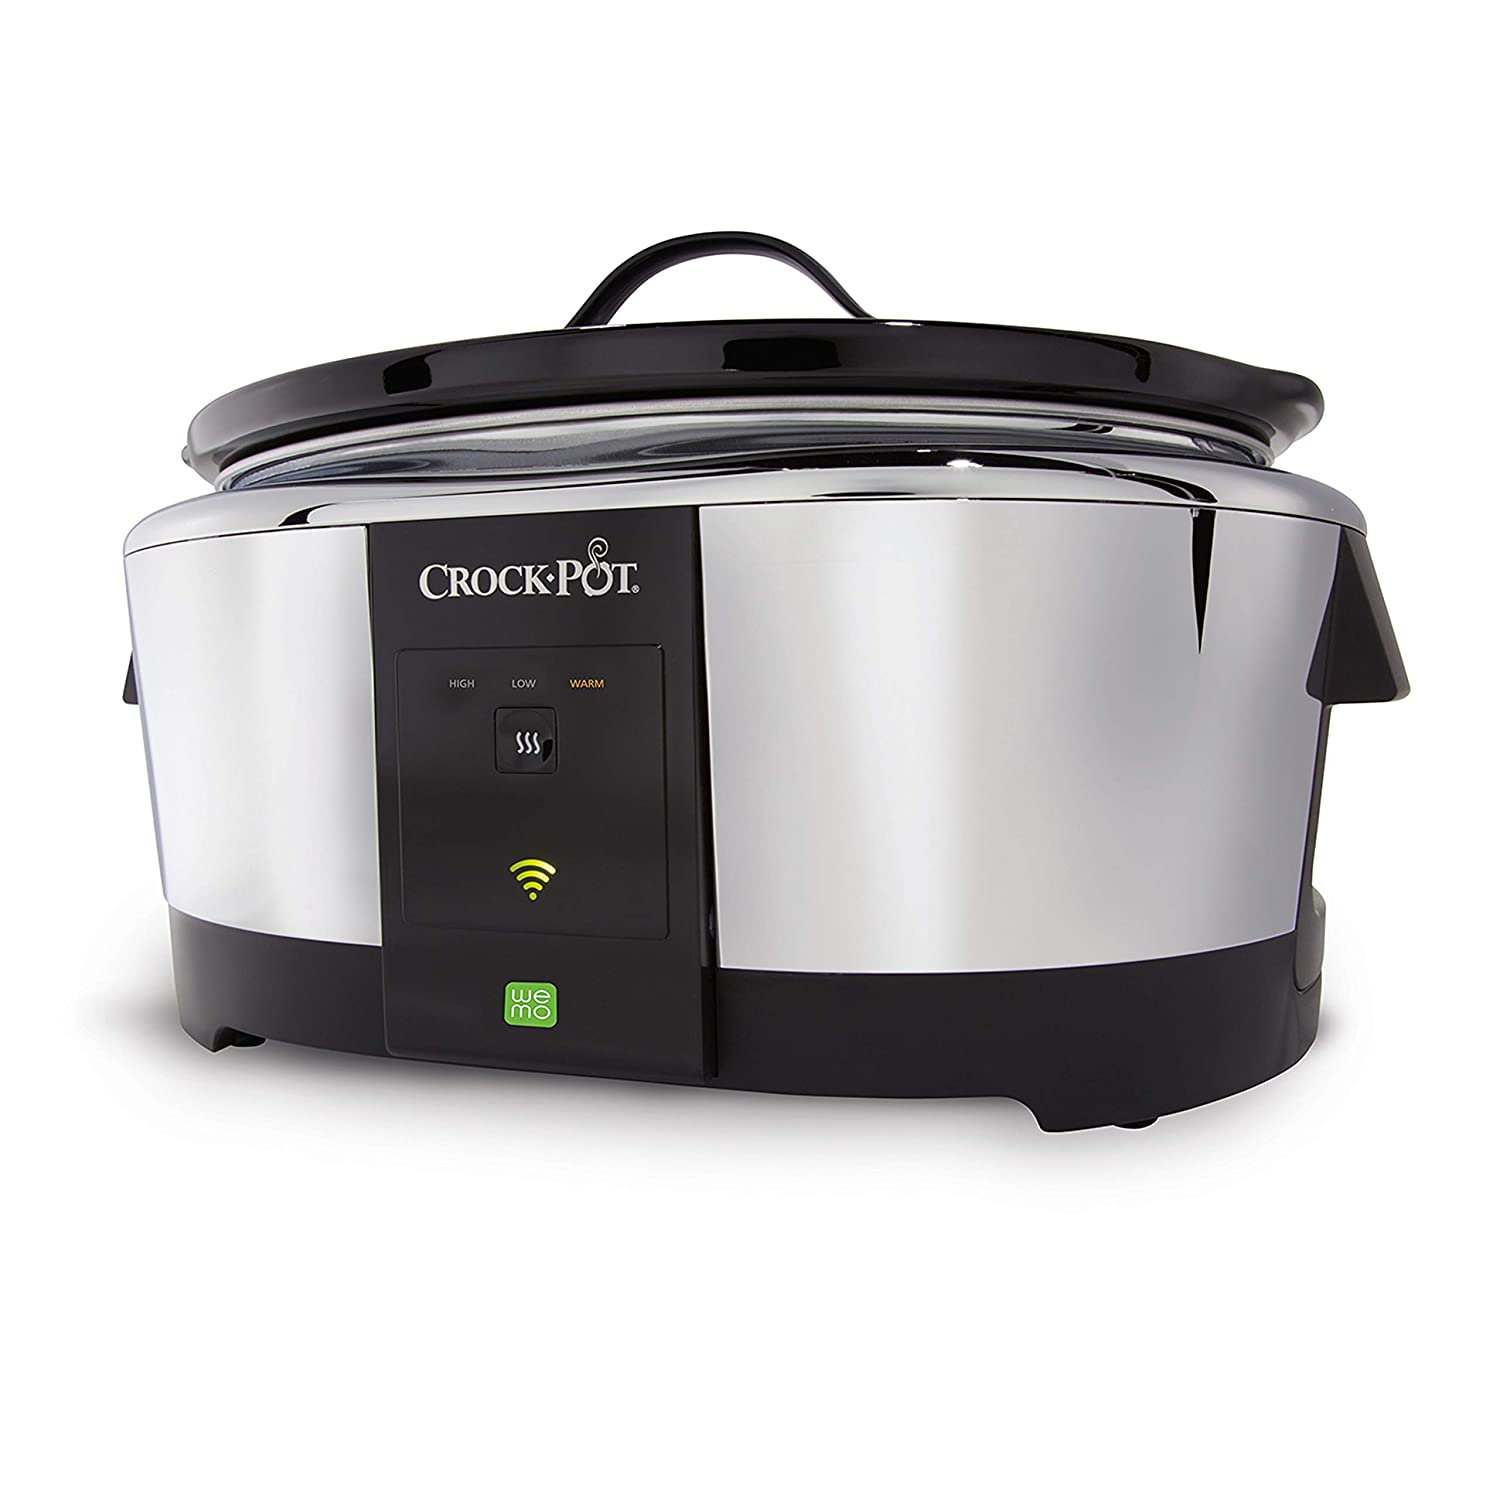 Crock-Pot 6-Quart WeMo-Enabled Smart Slow Cooker, Stainless Steel